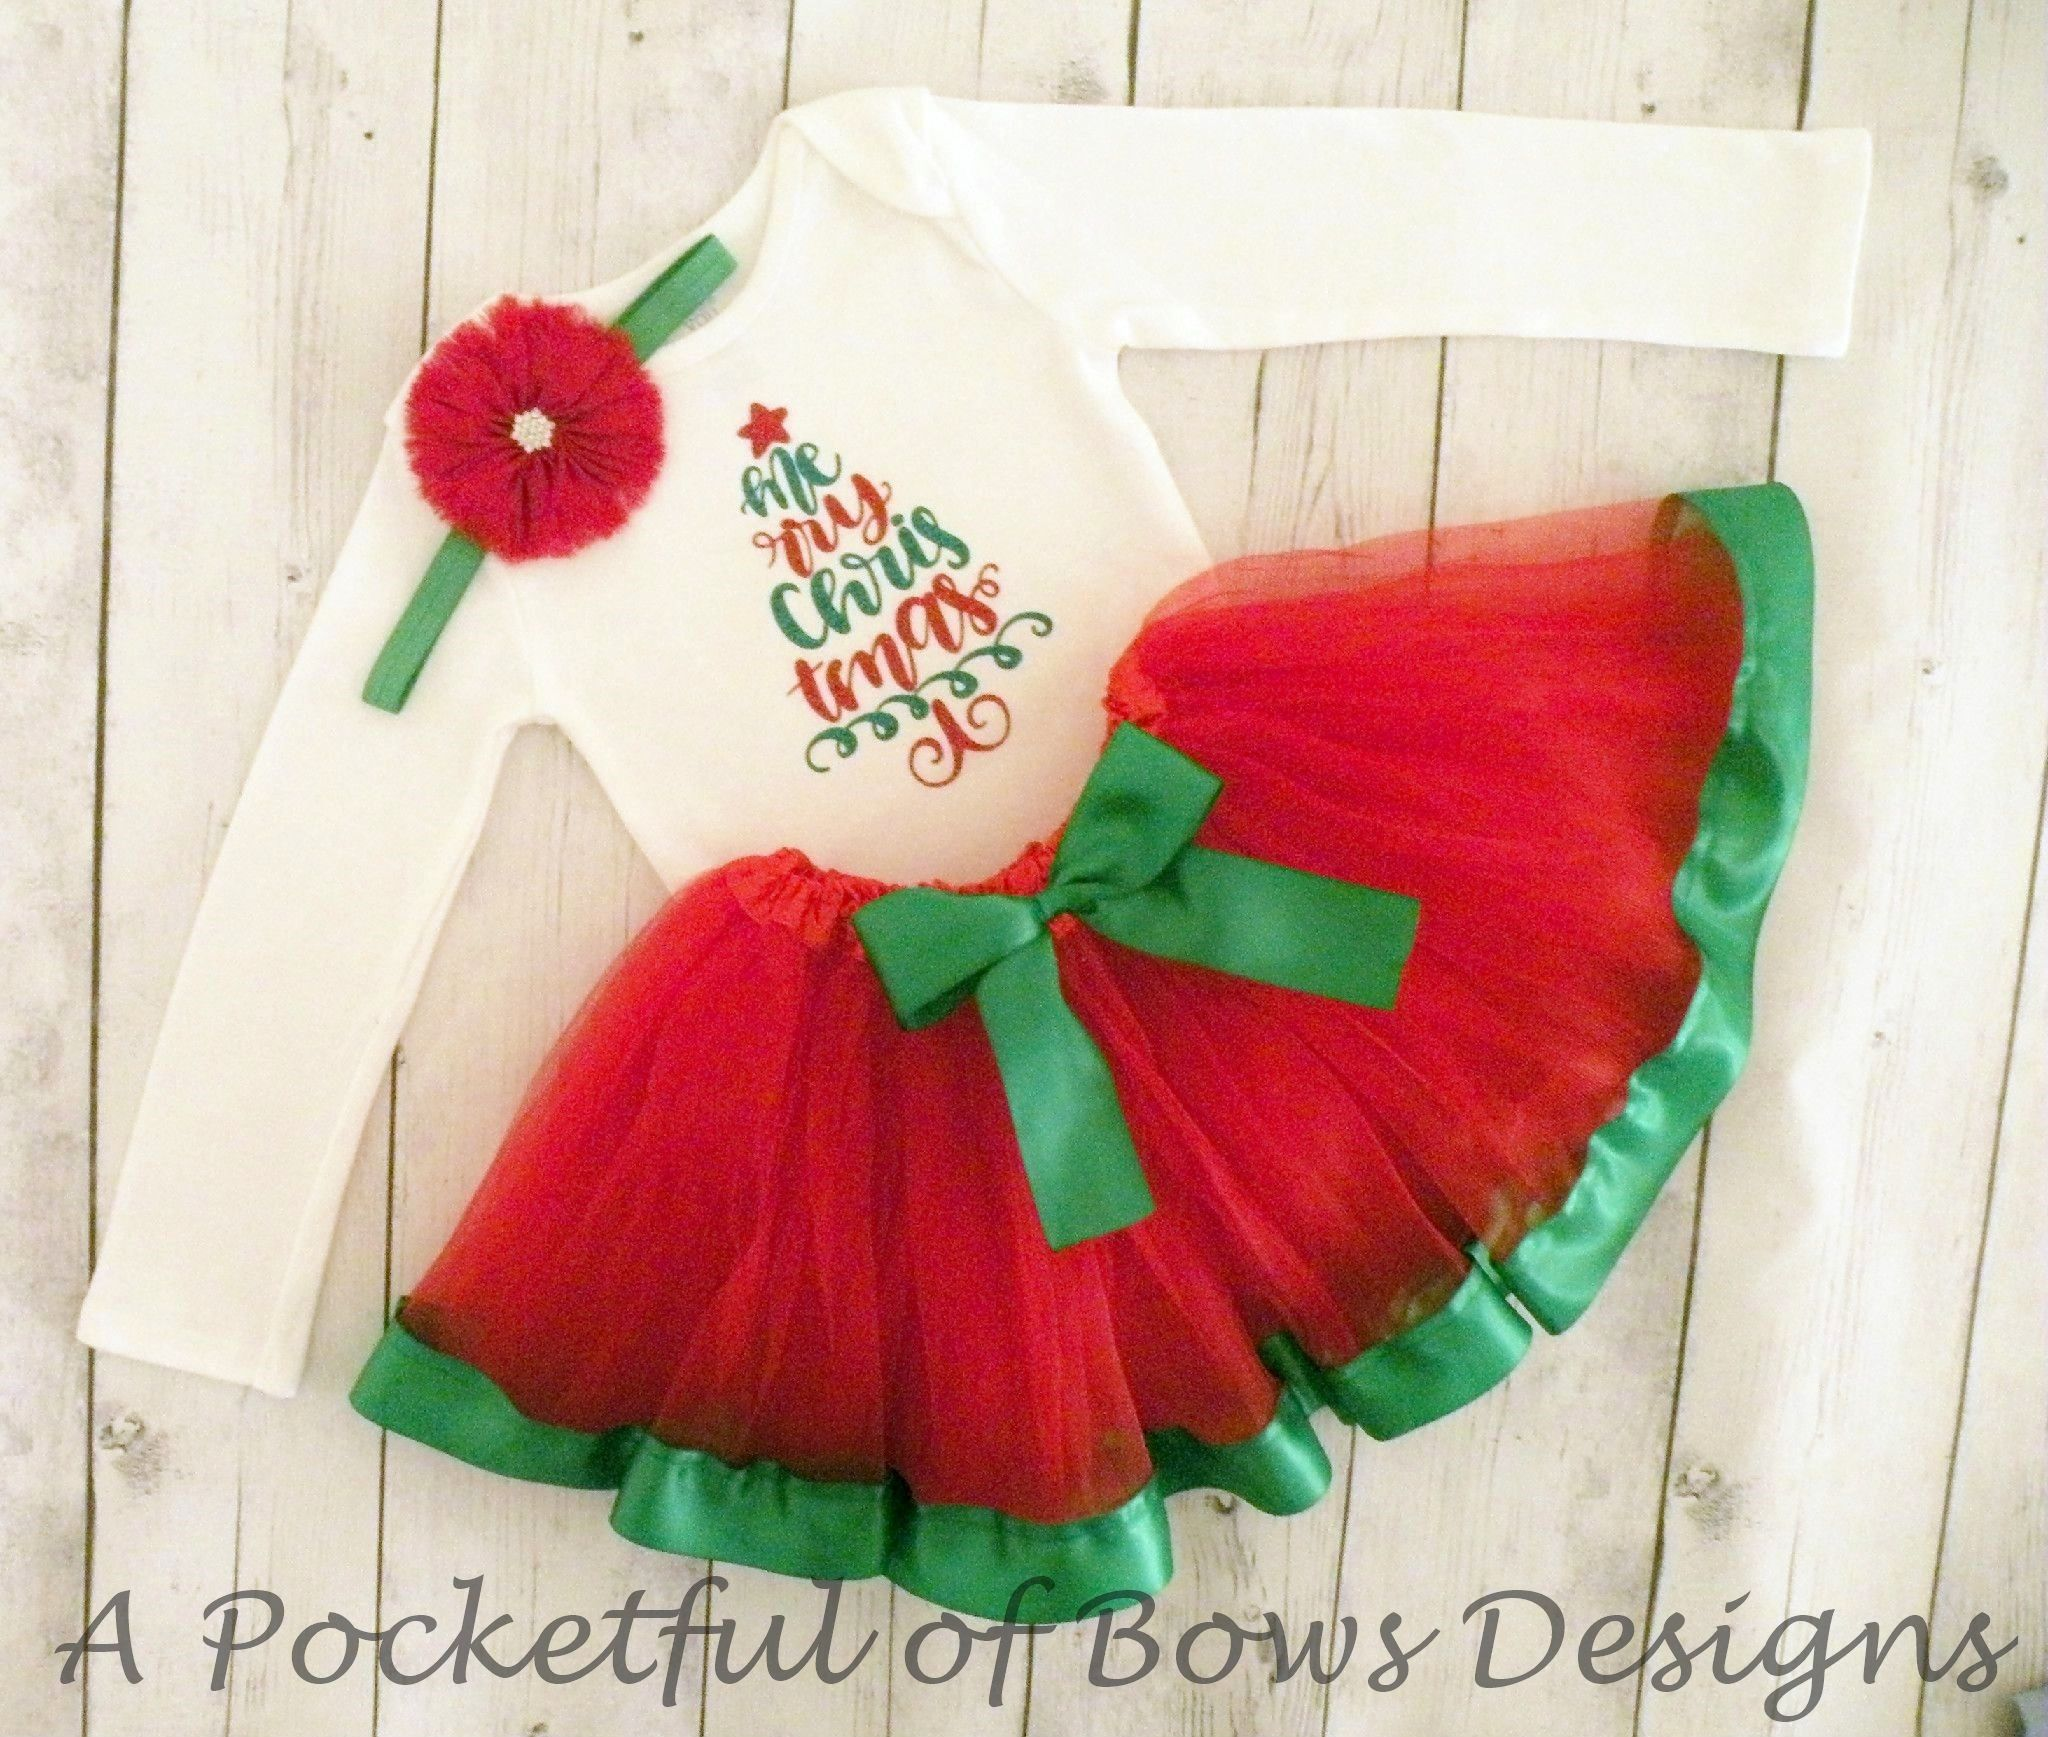 Christmas Tutu Outfits.Christmas Tutu Outfit Red And Green Christmas Tutu Dresses